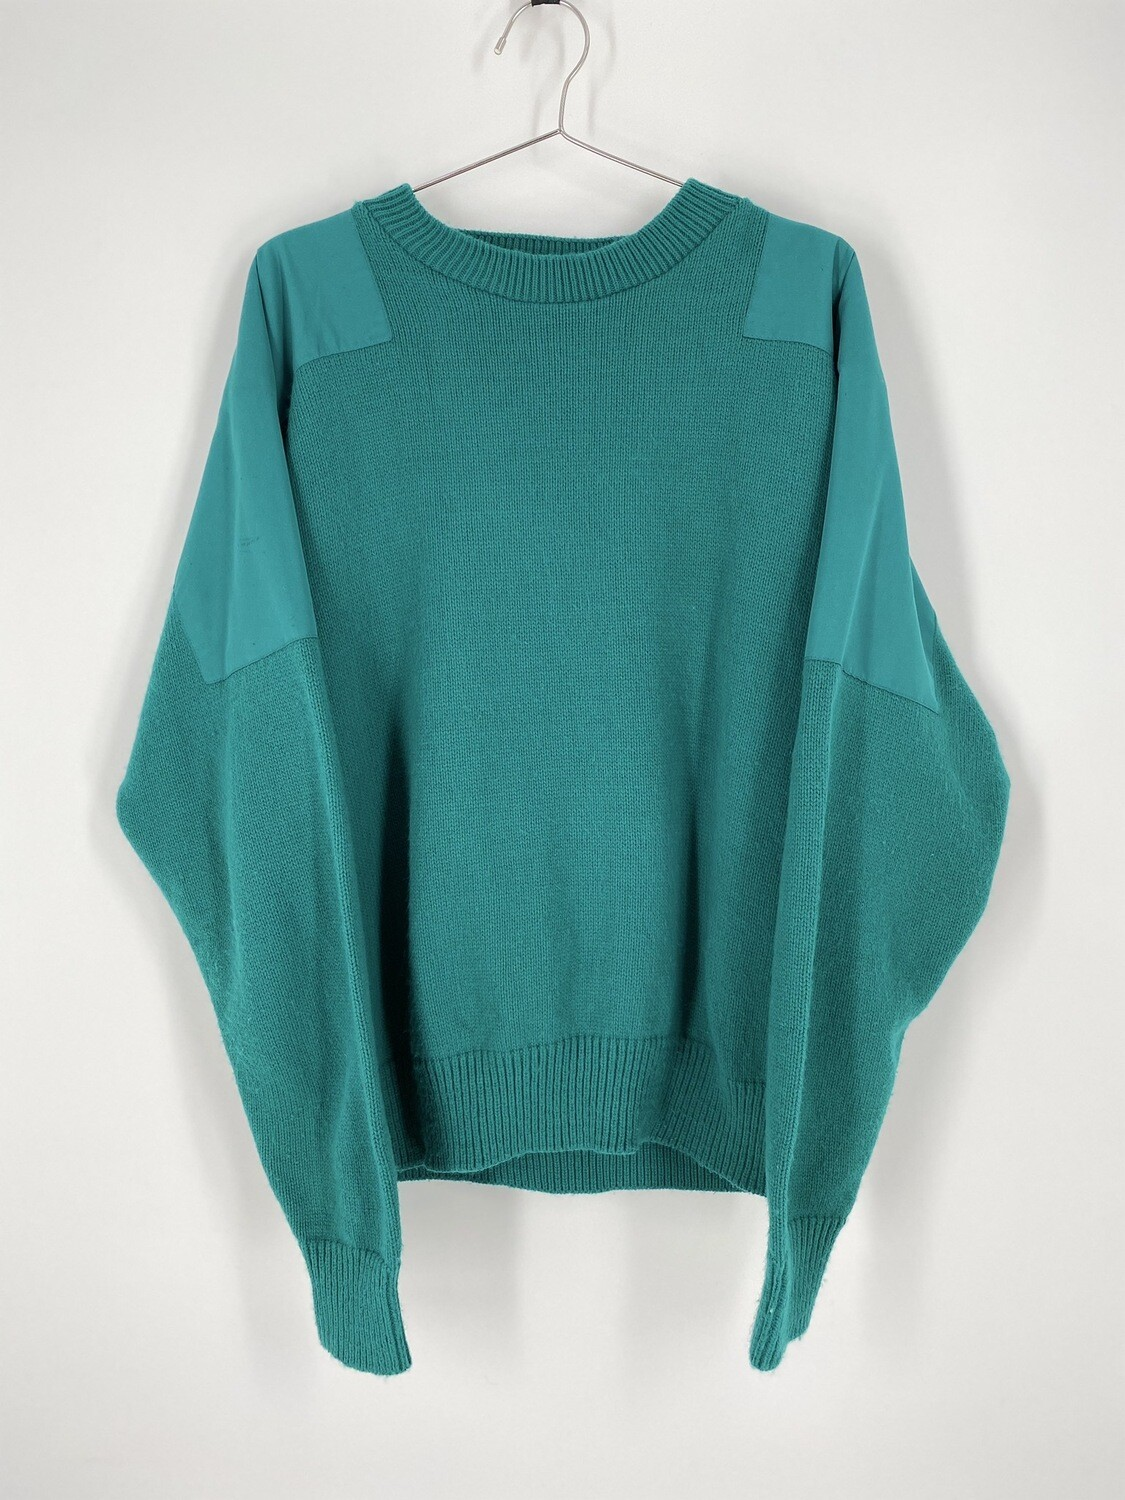 Teal Water Repellent Sweater Size M